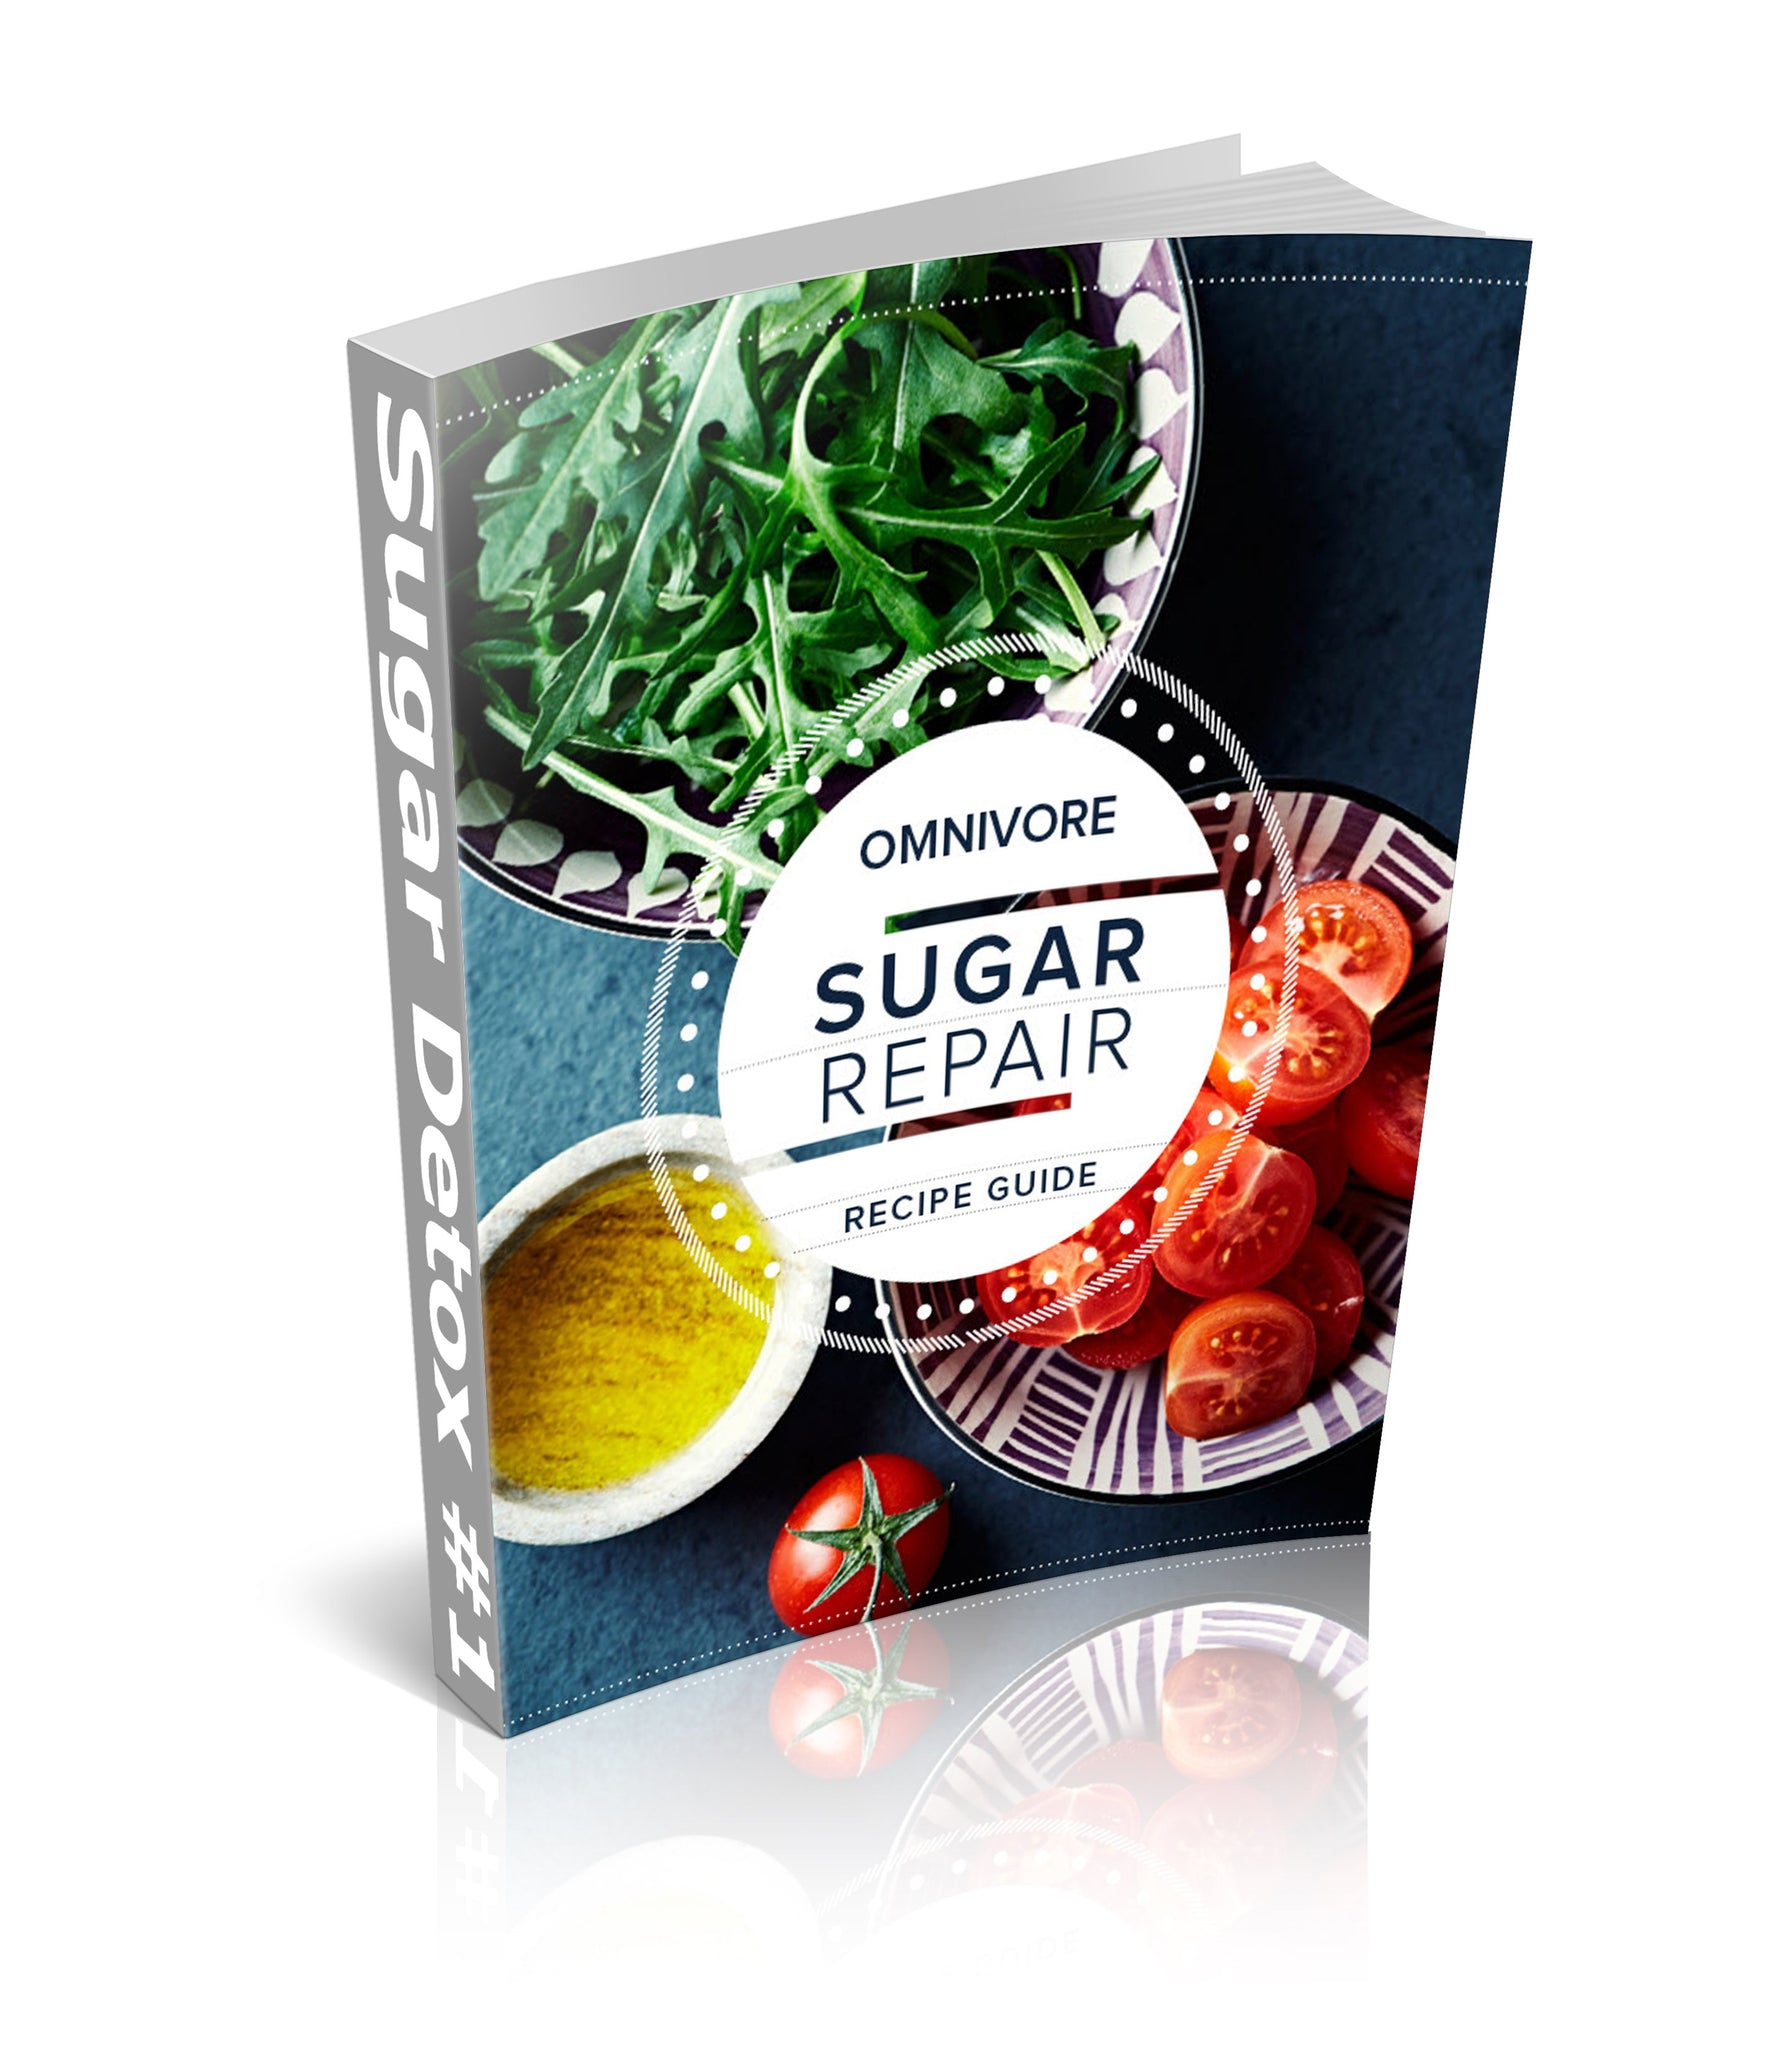 Omnivore Sugar Repair Recipe Guide 01 - Free Download - traversebayfarms